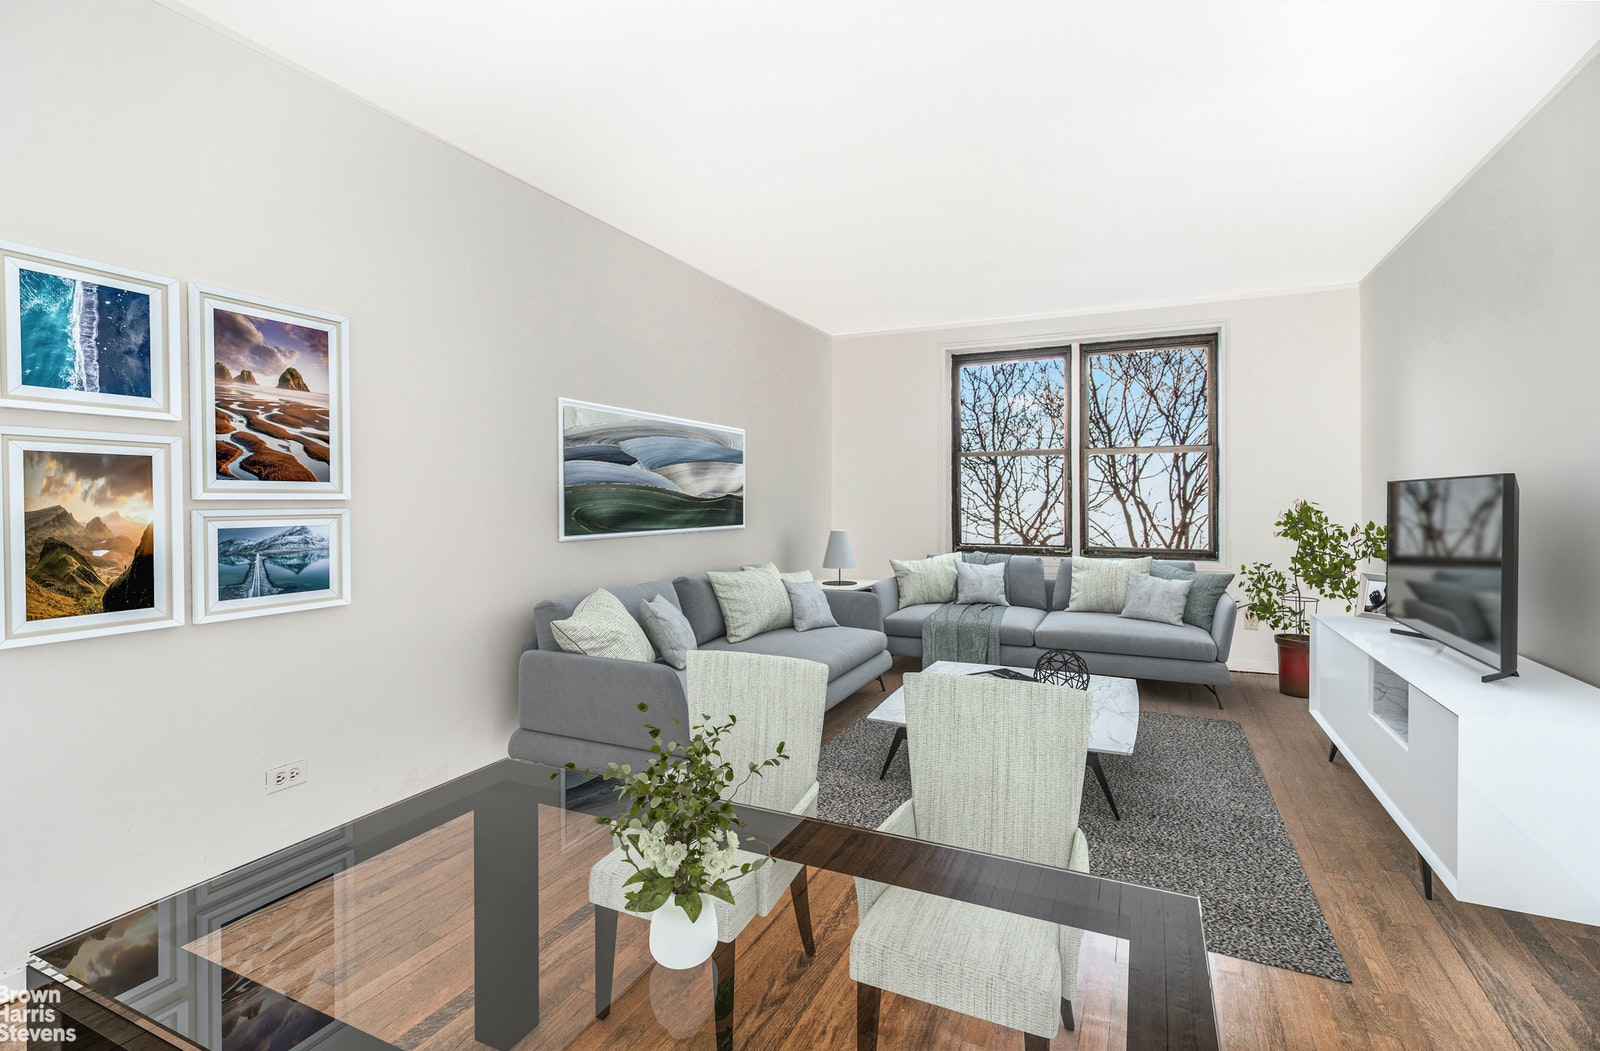 2550 INDEPENDENCE AVE 3B, South Riverdale, $349,000, Web #: 20480817